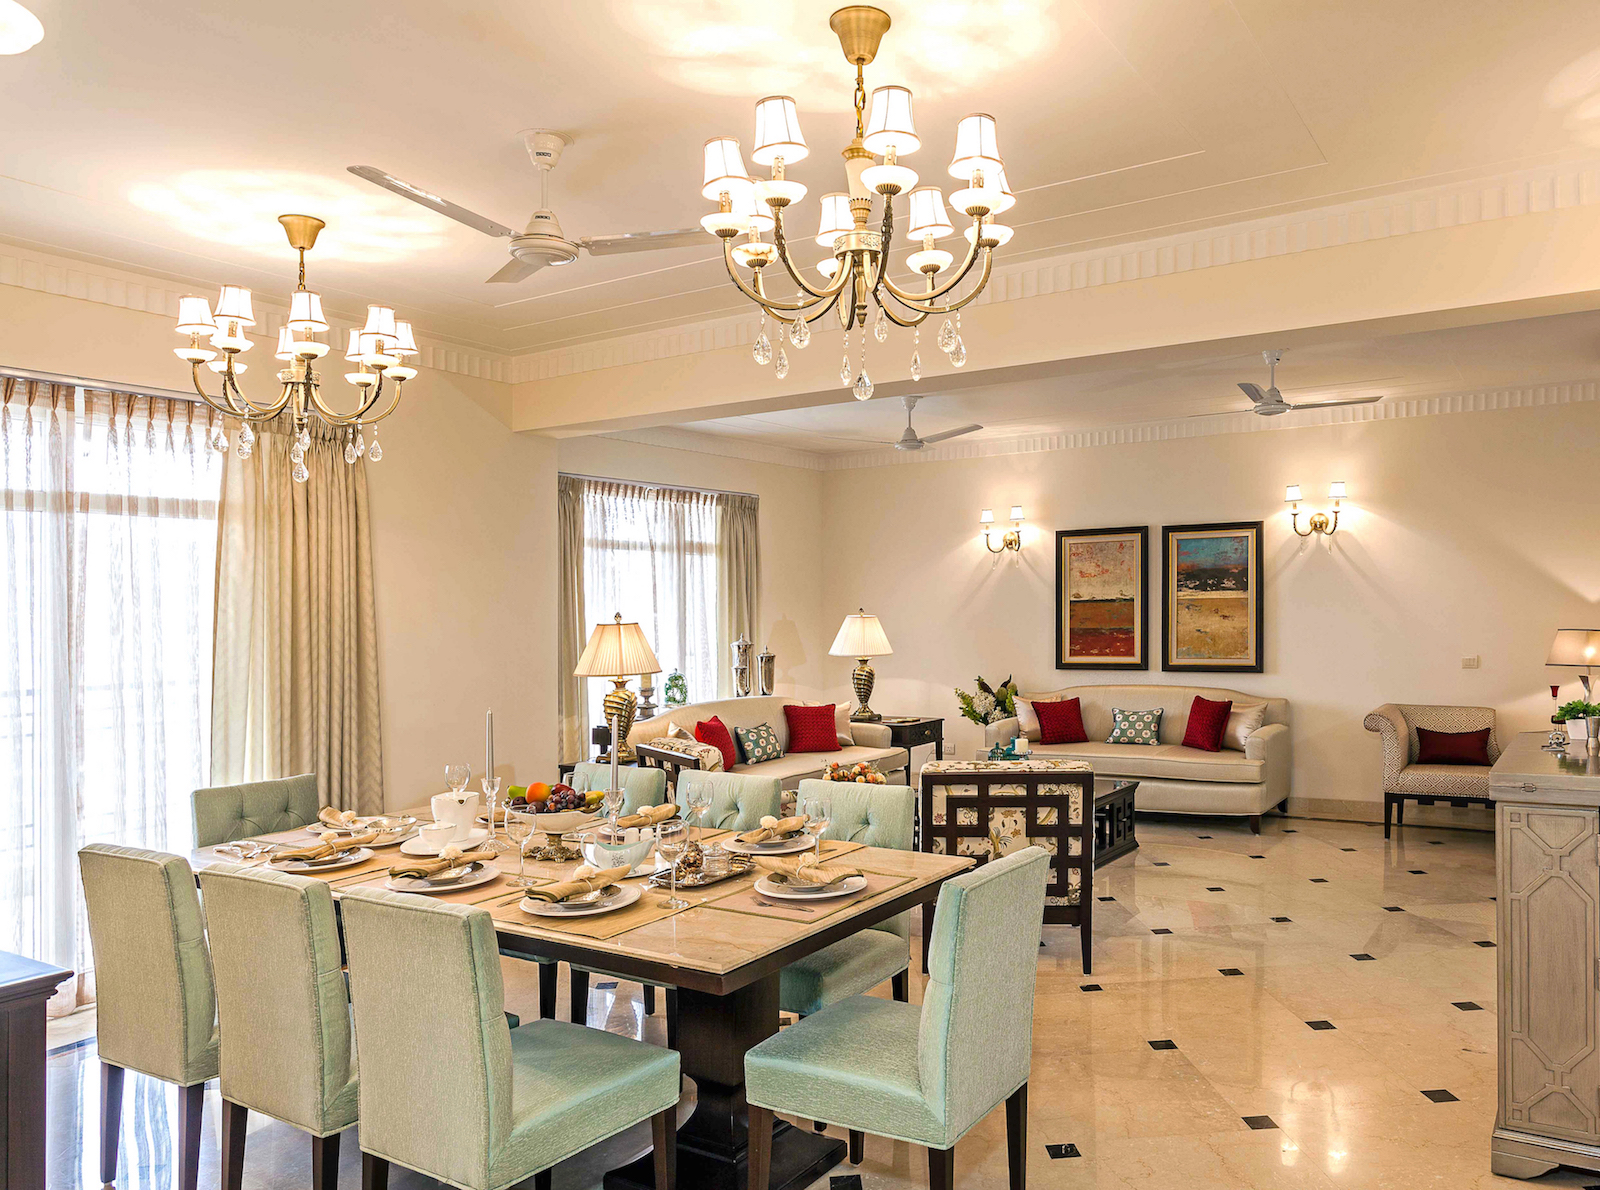 House Tour: Inside A Delhi 4BHK With Timeless Transitional